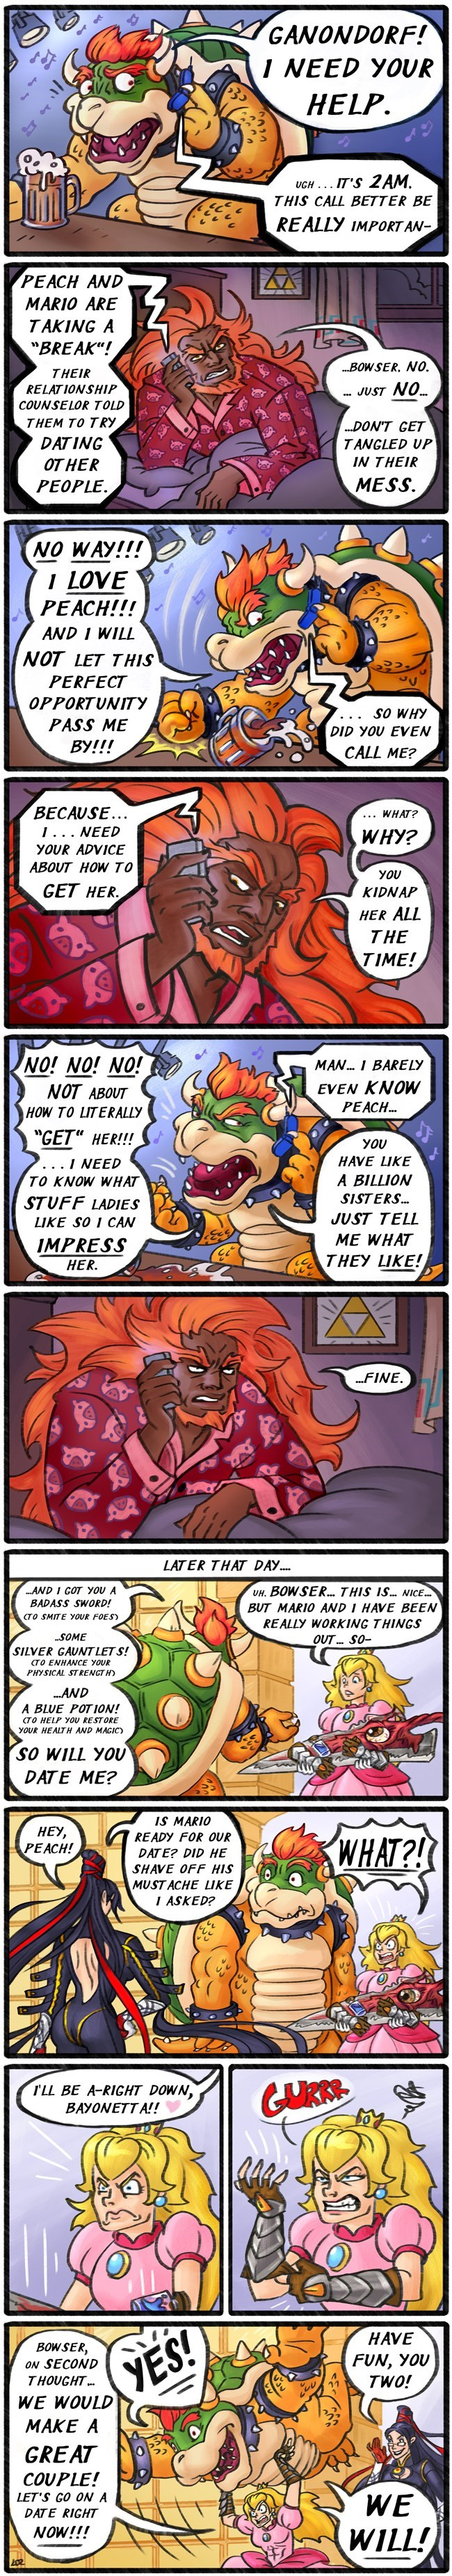 princess peach,bowser,funny,nintendo,web comics